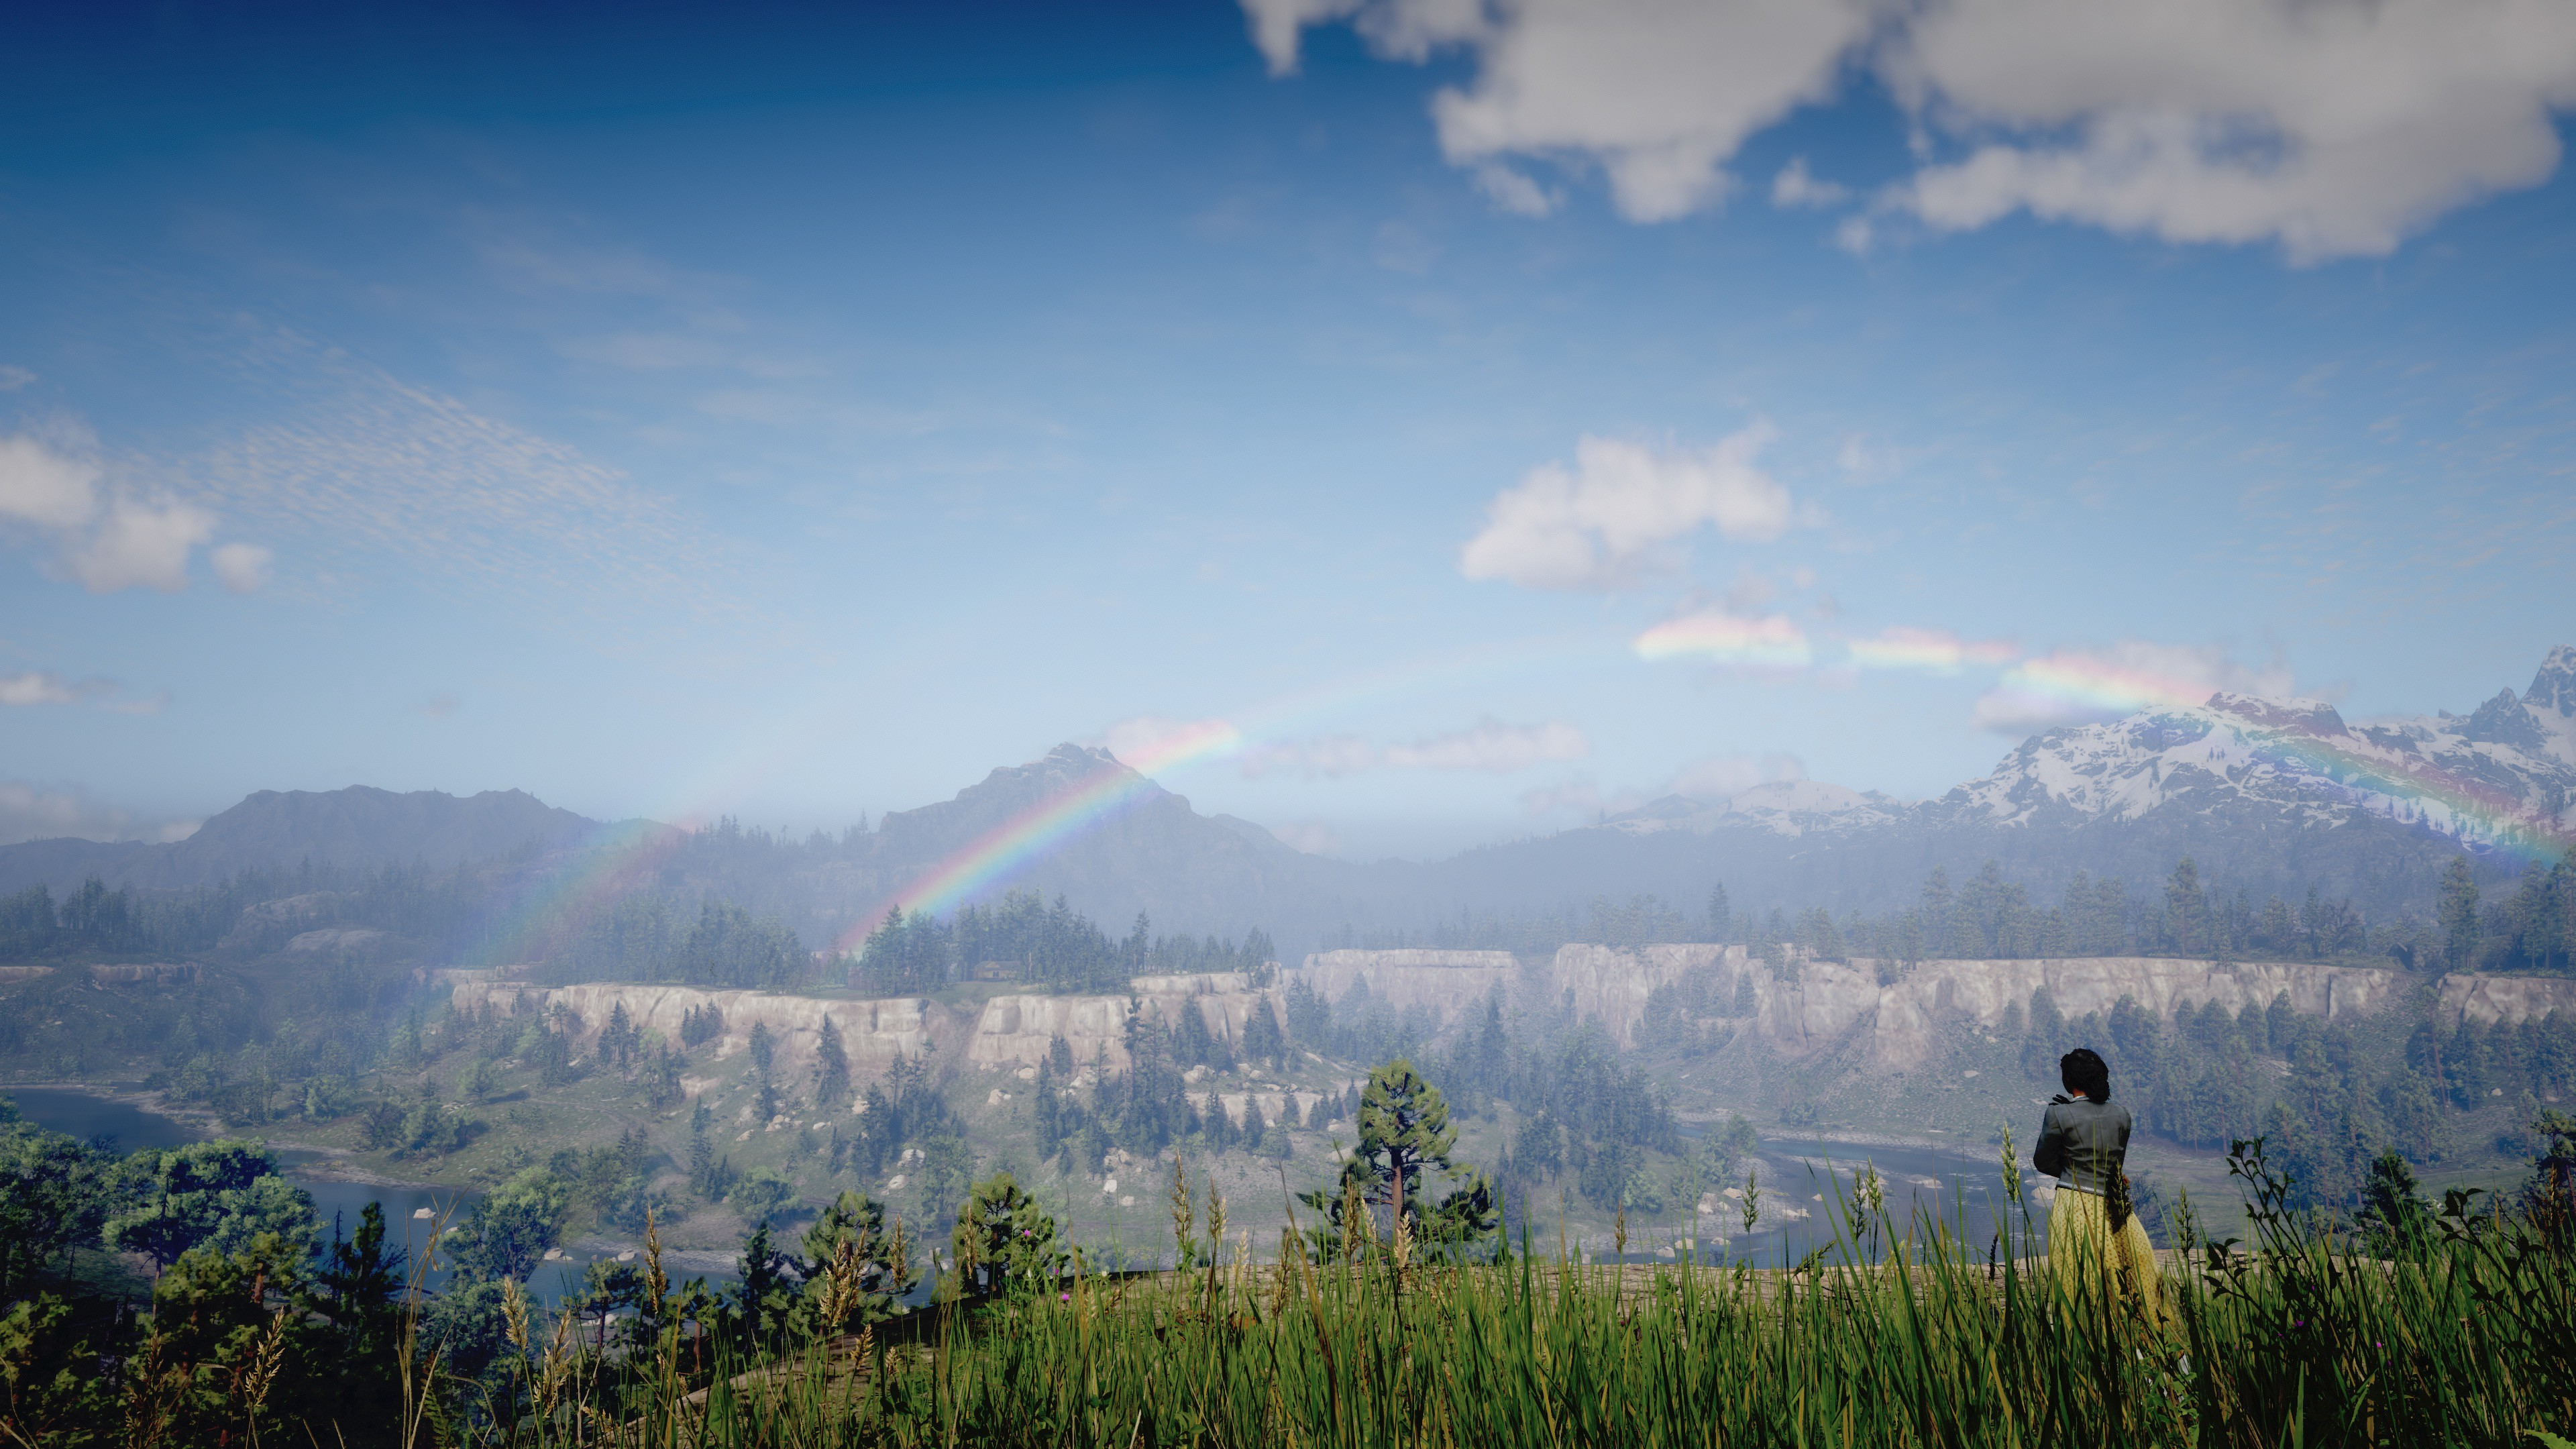 Tilly from Red Dead Redemption 2, standing at a cliffside, looking at mountains with a double rainbow above them.